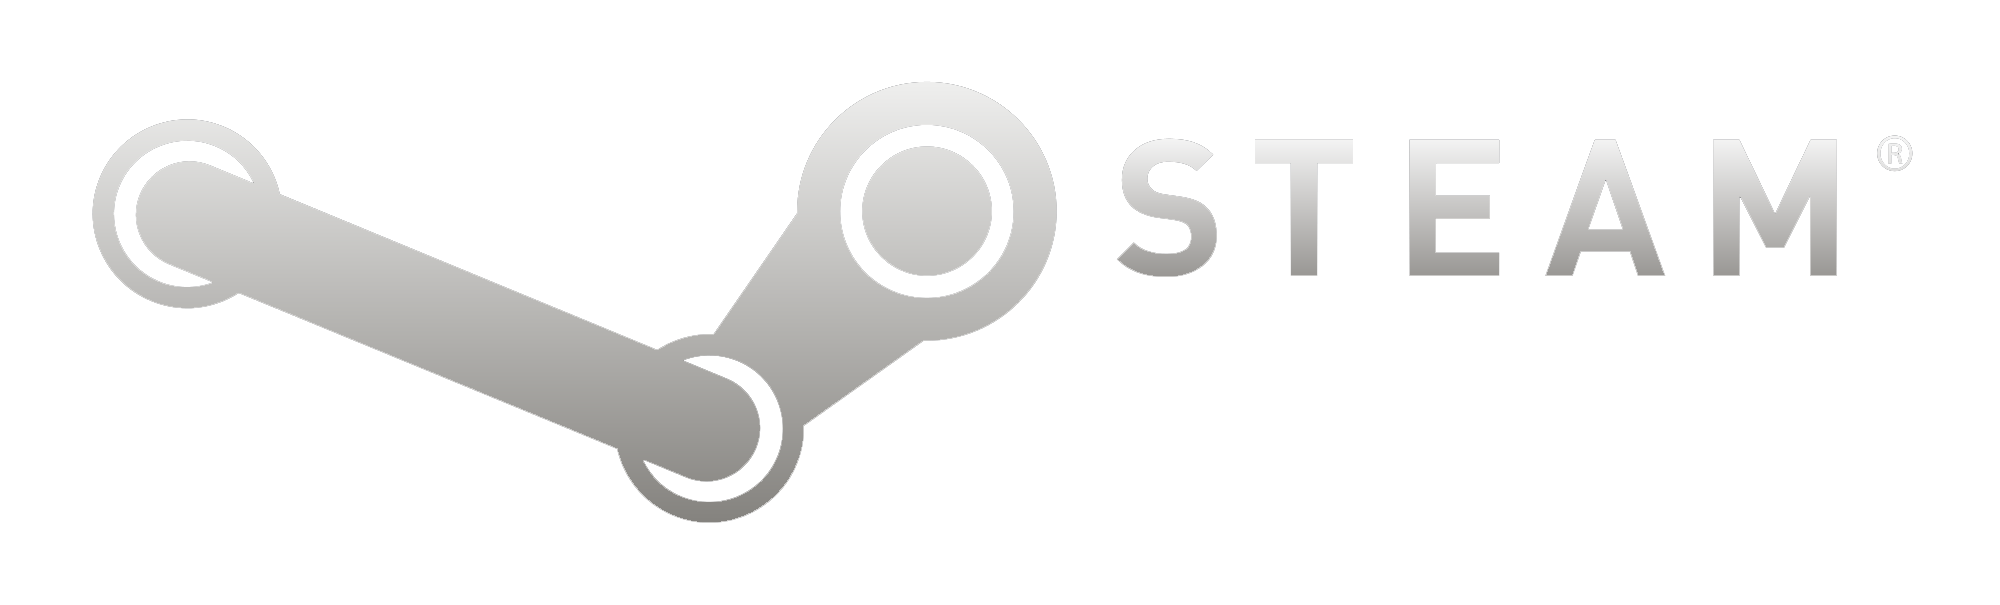 파일:Steam_logo.png